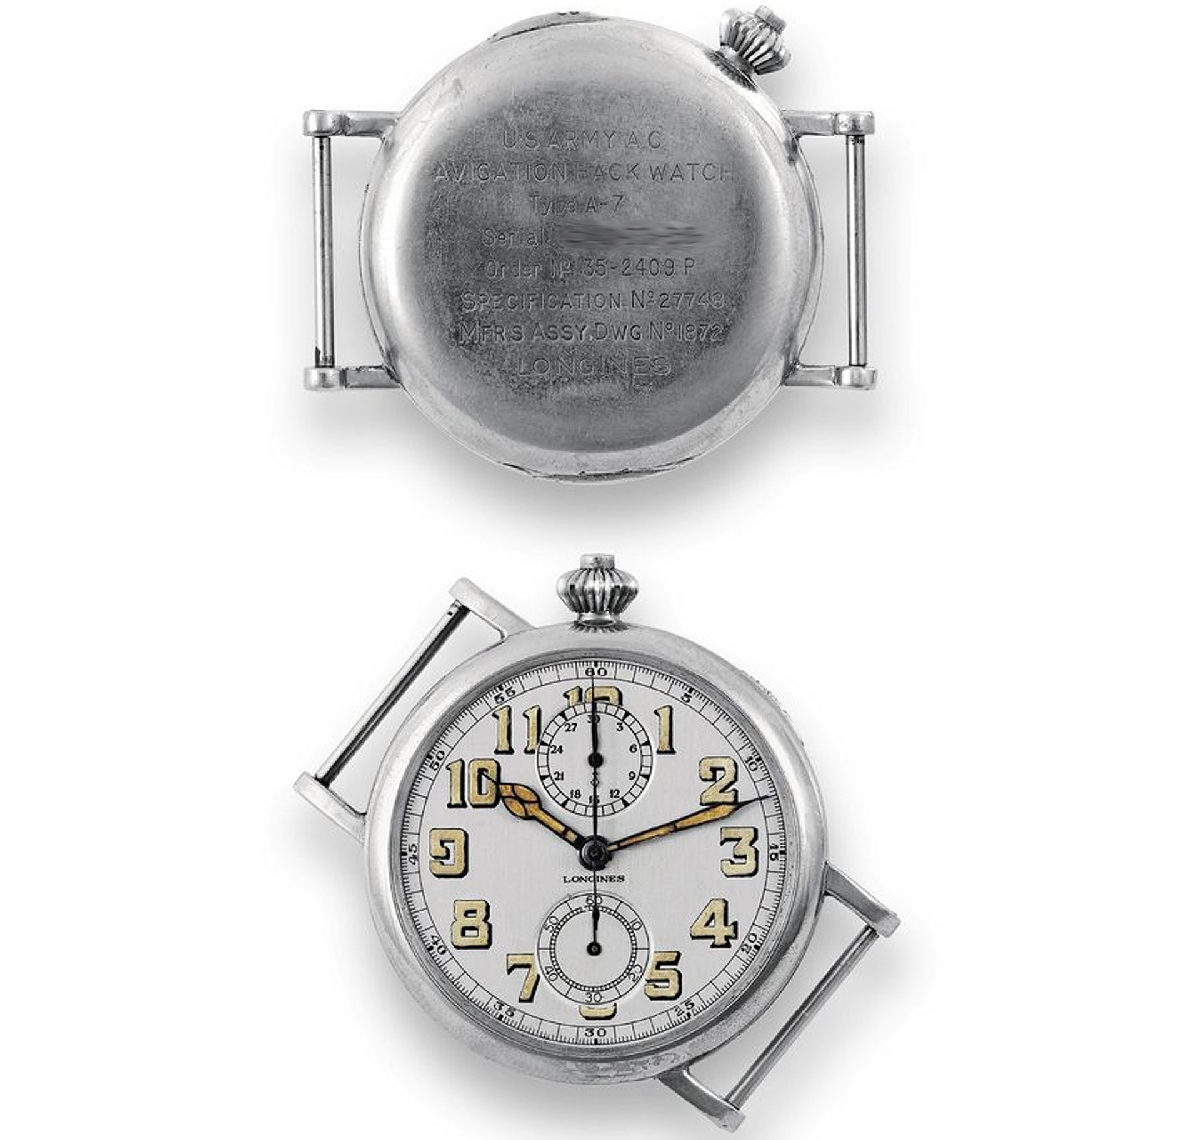 The Longines - Avigation Watch Type A-7 1935